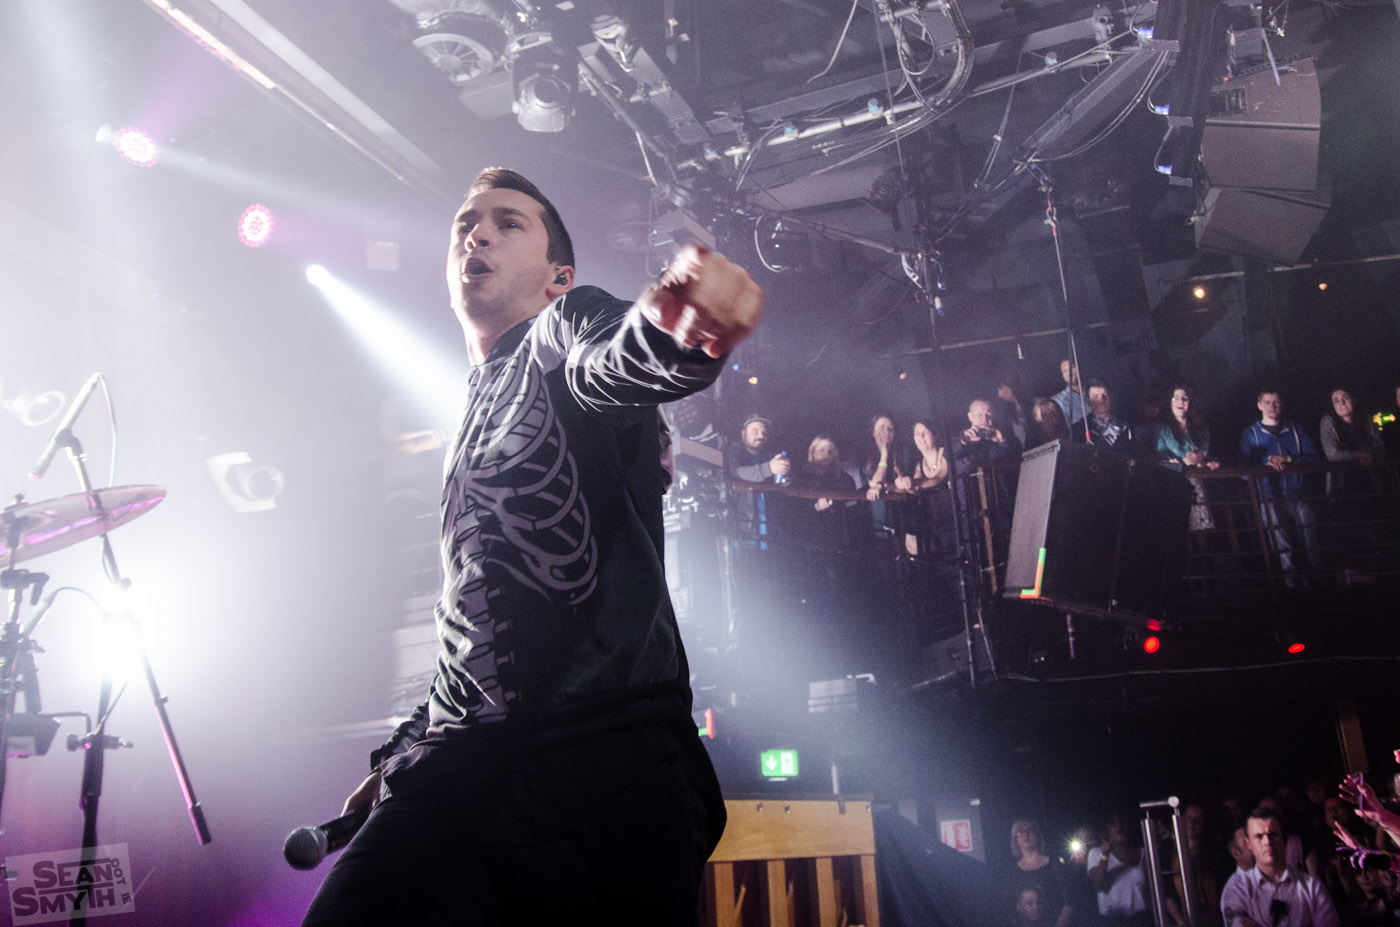 twenty-one-pilots-at-the-academy-by-sean-smyth-16-11-14-35-of-41_15621626617_o